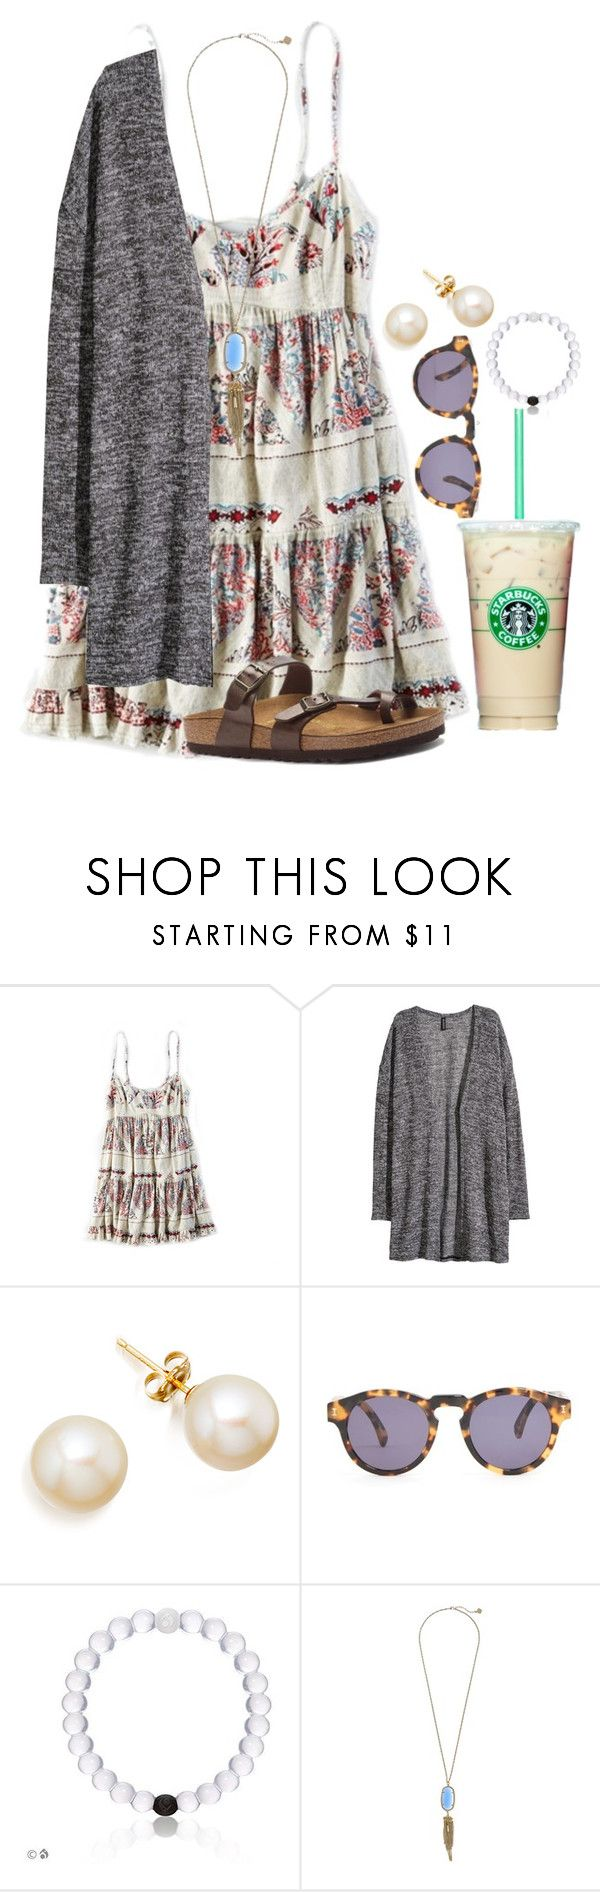 """I almost have this whole outfit, minus the necklace"" by flroasburn ❤ liked on Polyvore featuring American Eagle Outfitters, H&M, Illesteva, Kendra Scott and Birkenstock"